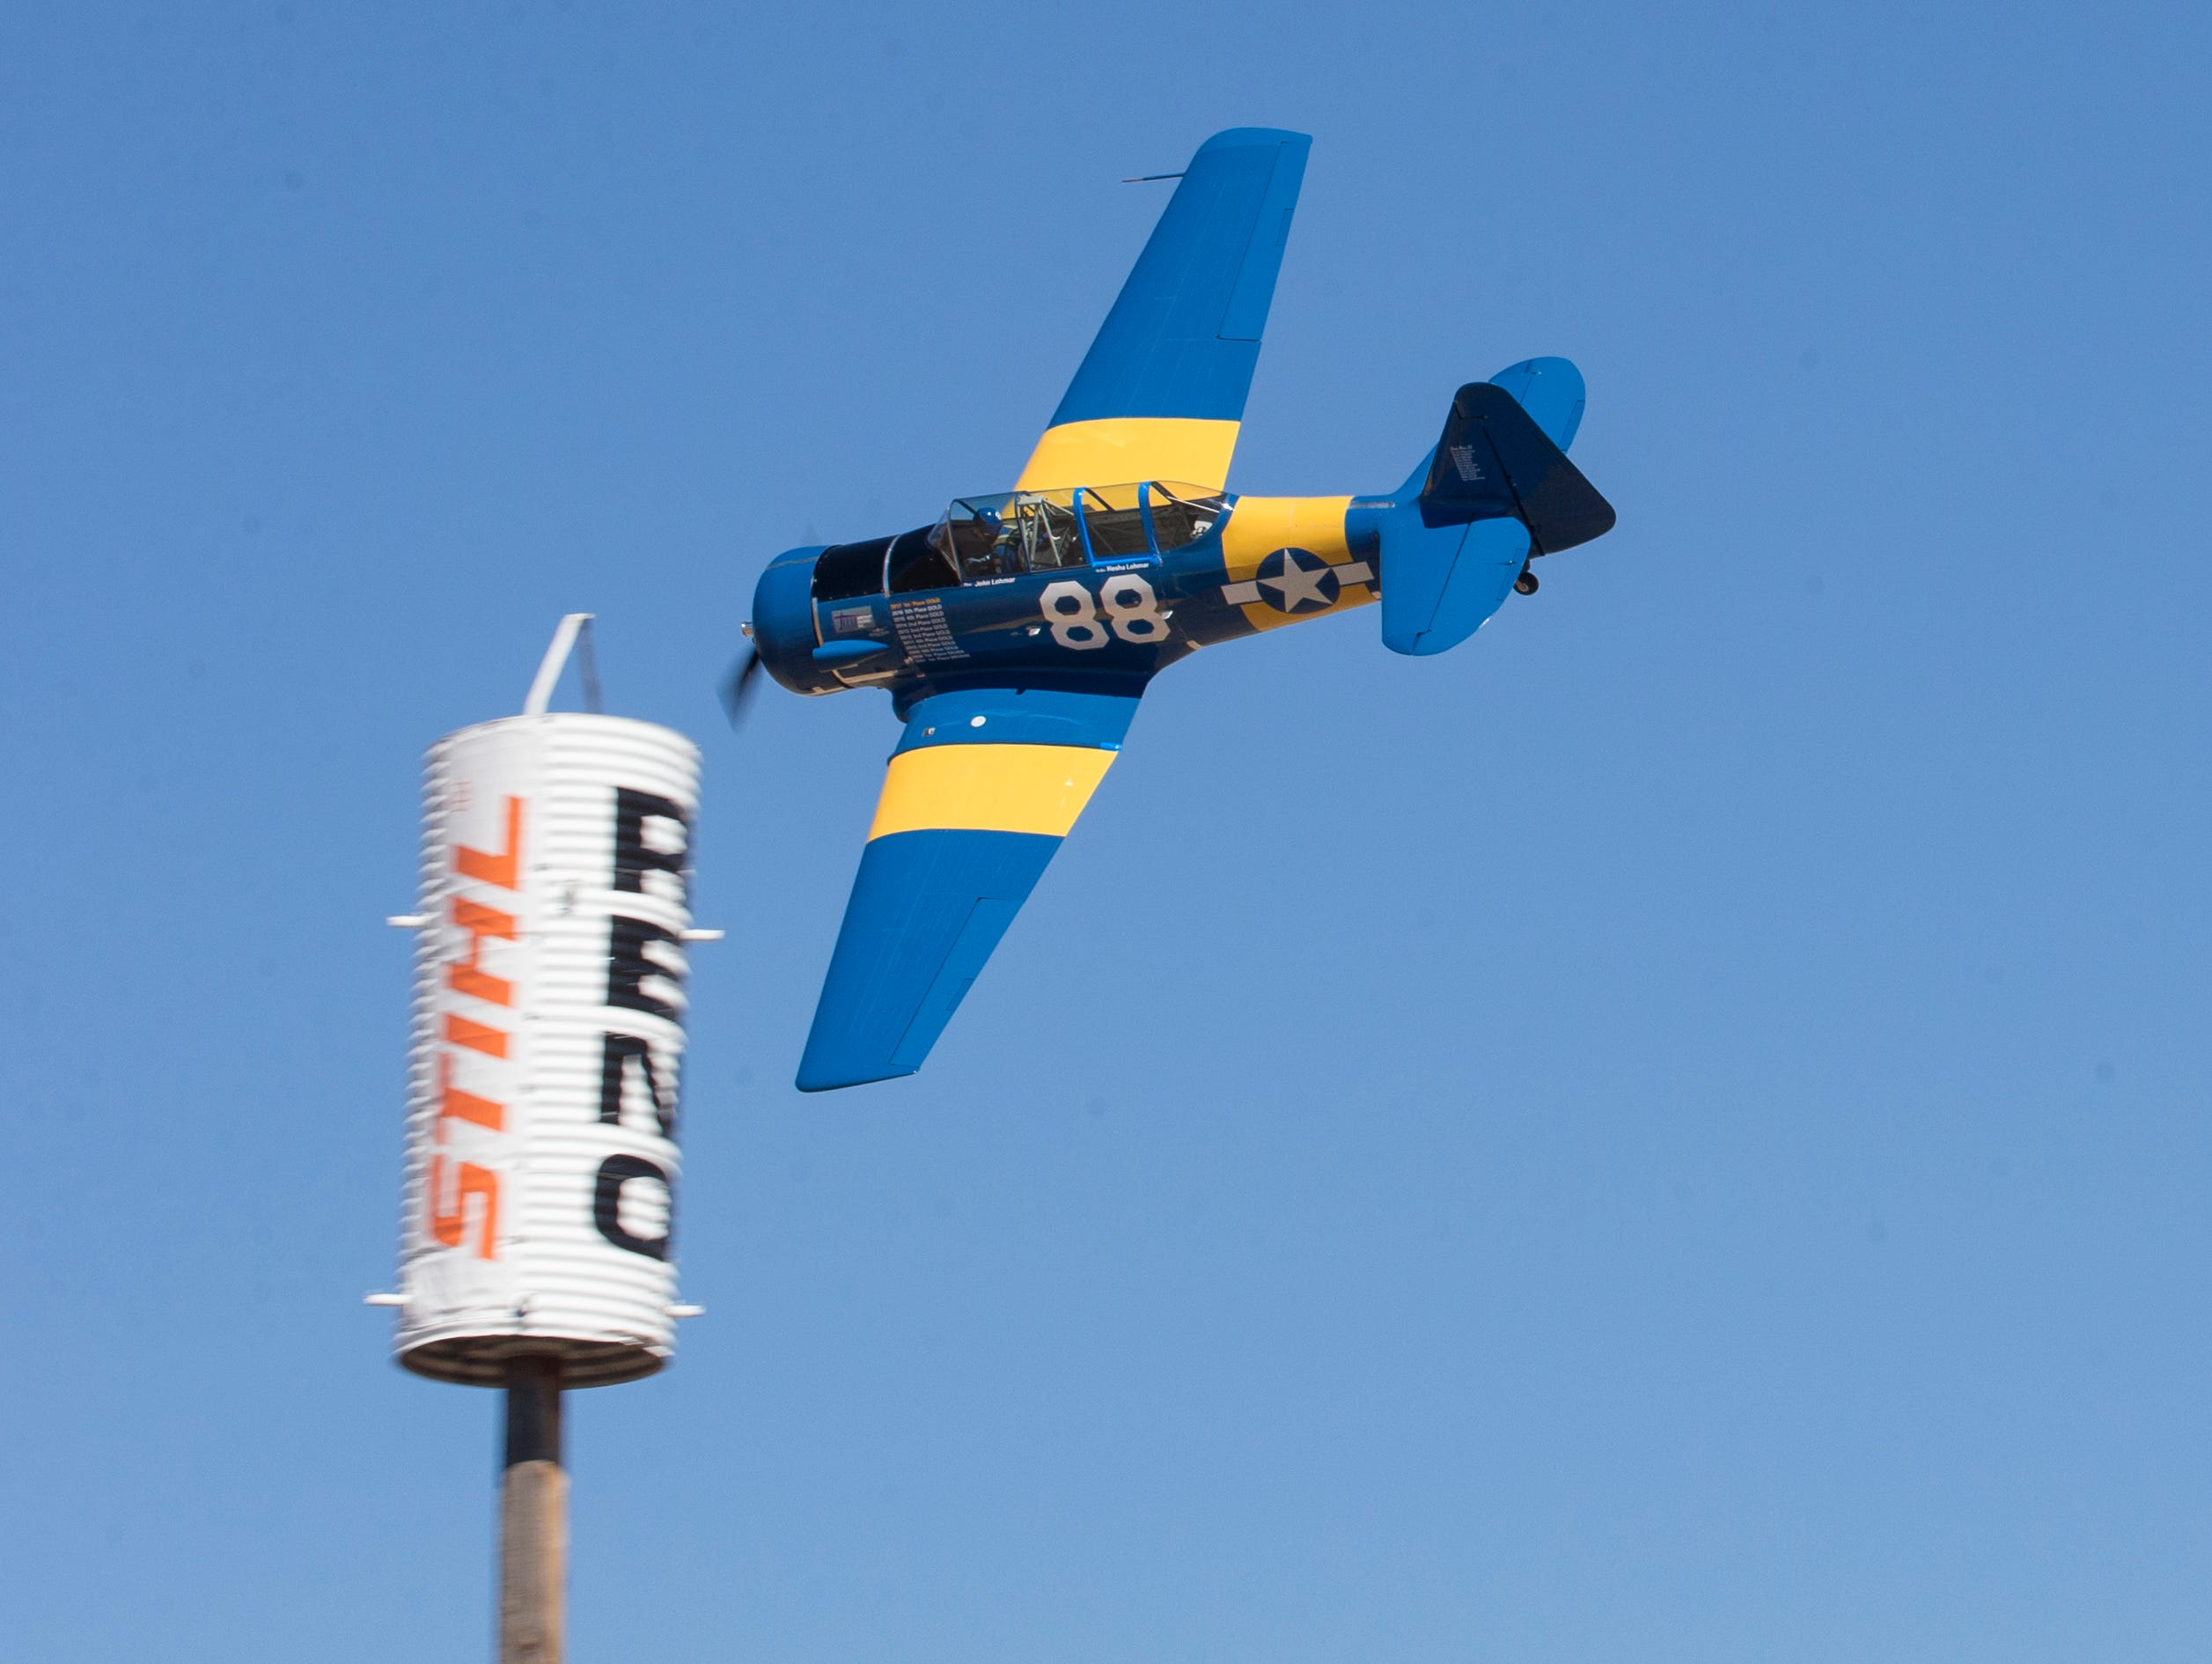 John Lohmar from Dallas, TX, T-6 Gold Champion, flies Radial Veloccity during the Reno National Championship Air Races on Sunday, Sept. 16, 2018.